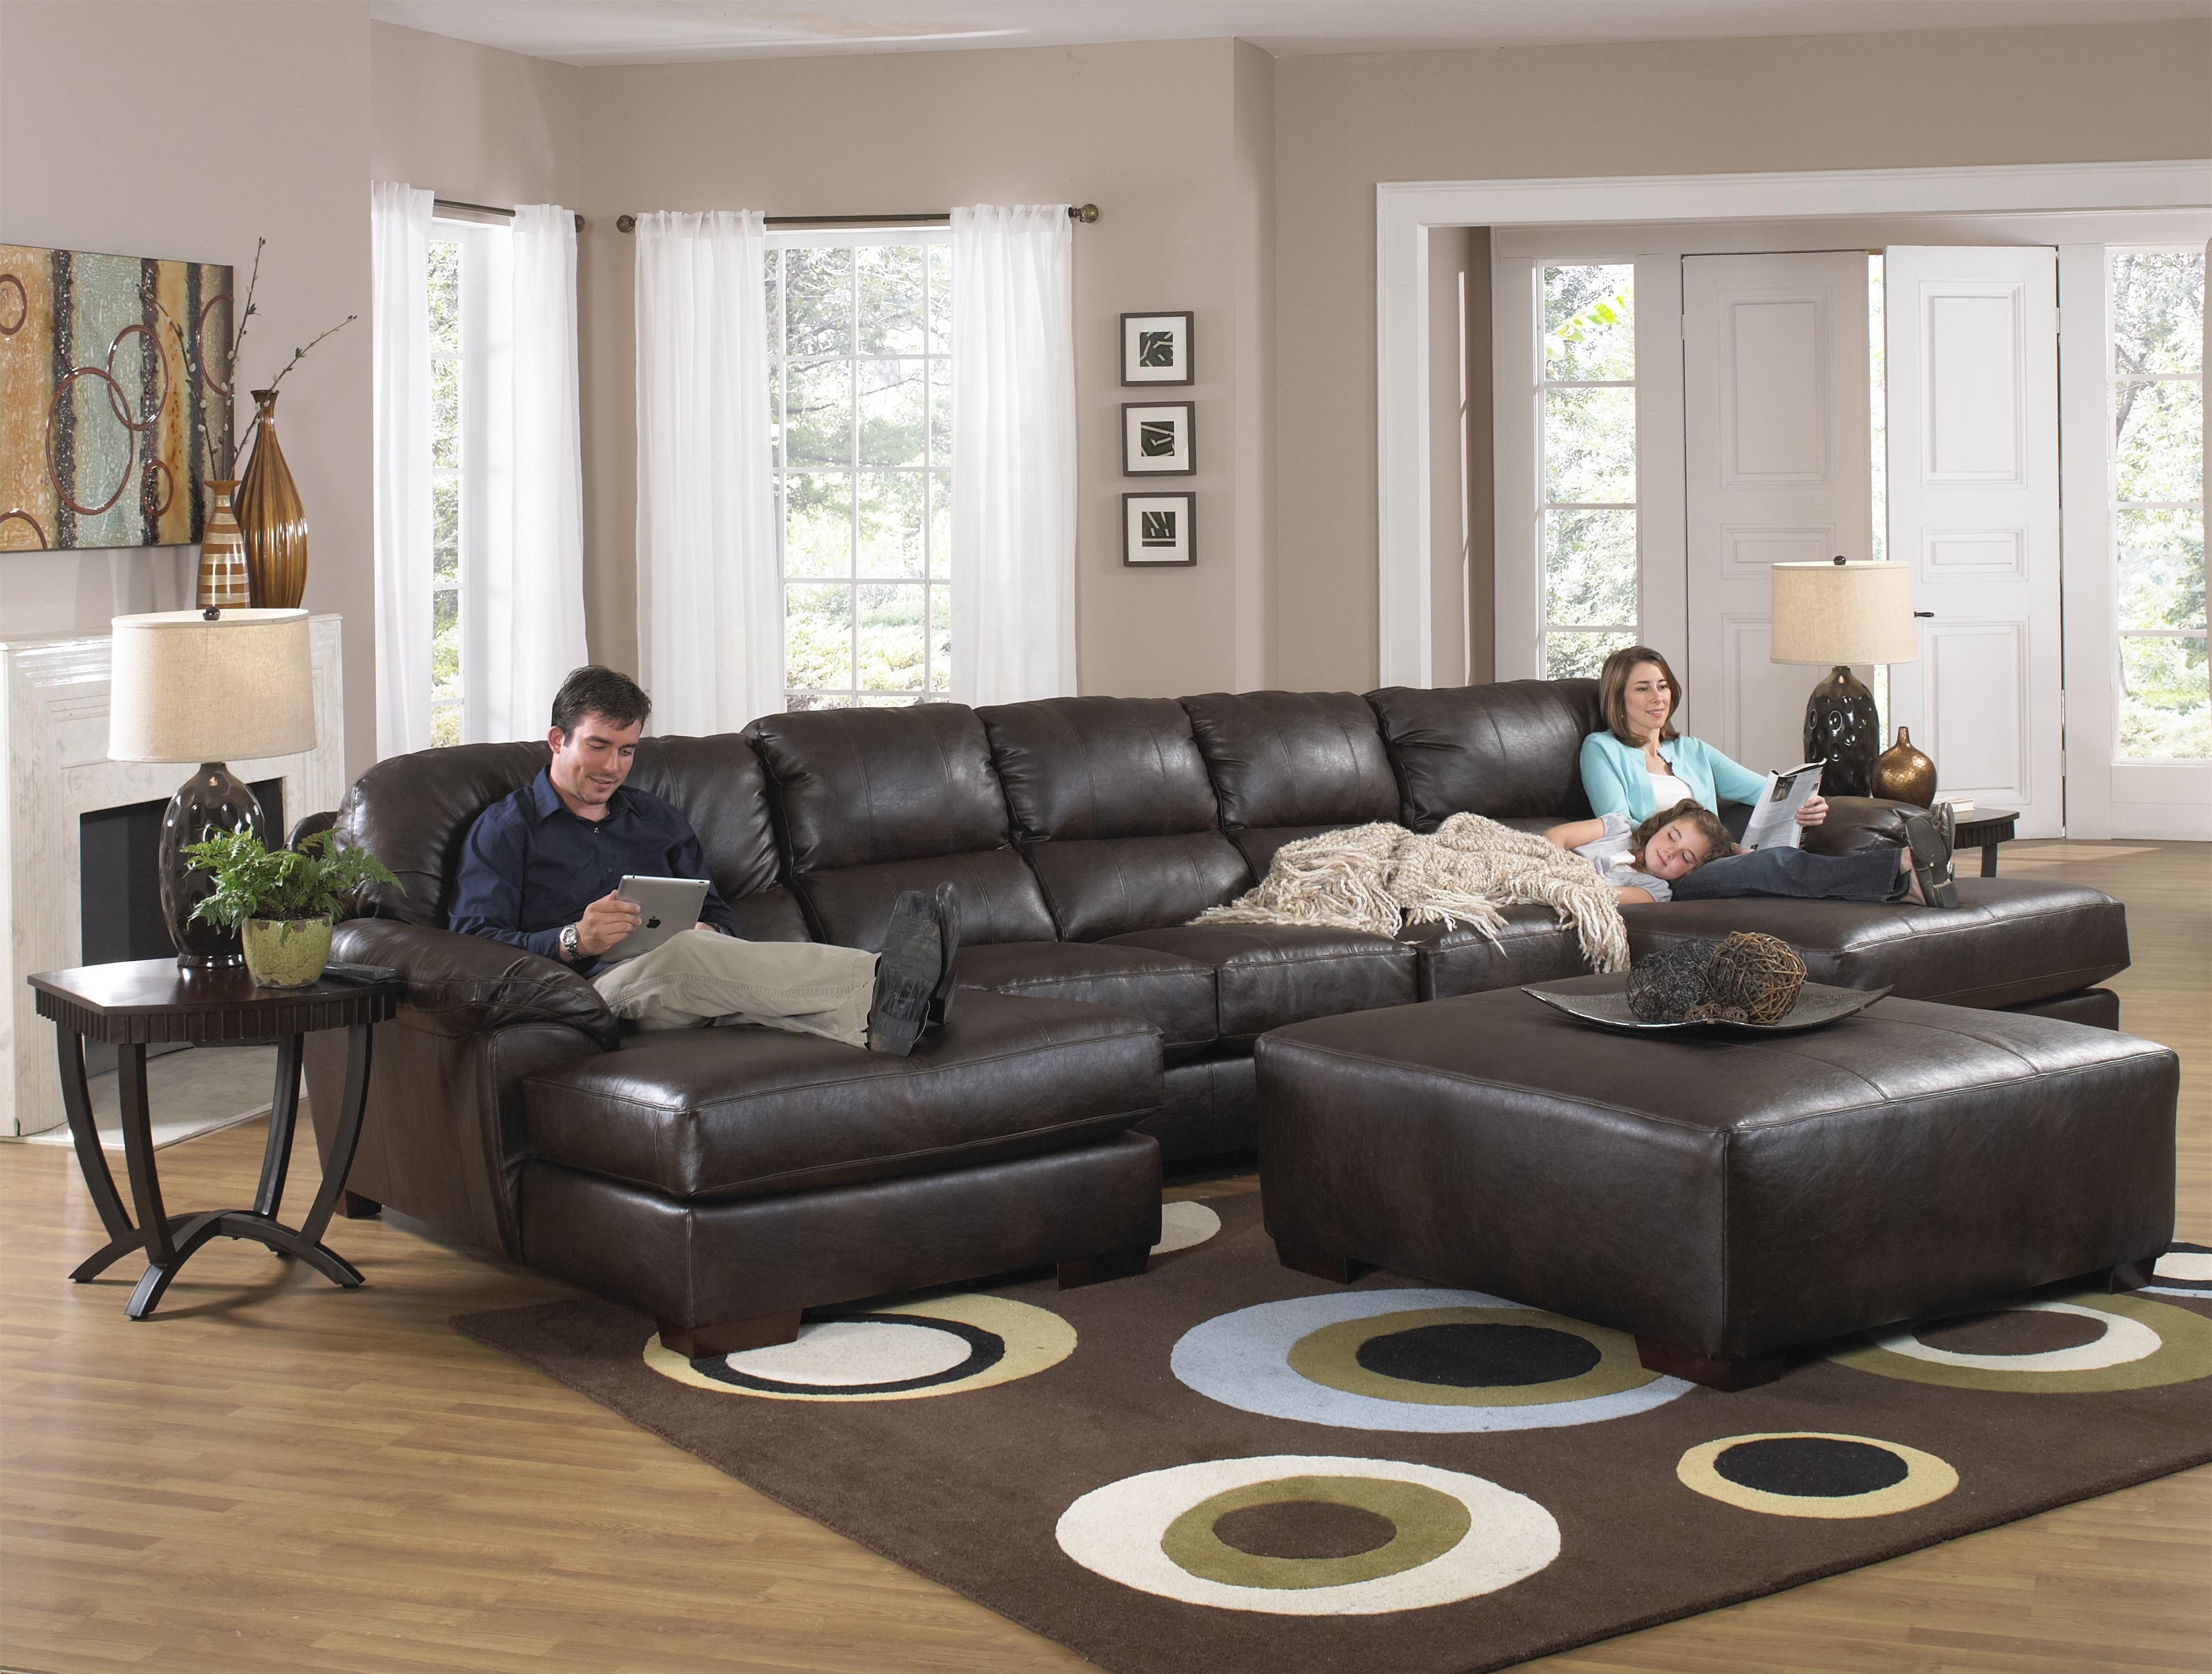 Sofas With Chaise And Ottoman Regarding Latest Sofa : Beautiful Large Sectional Sofa With Chaise L Shaped Cream (View 9 of 20)